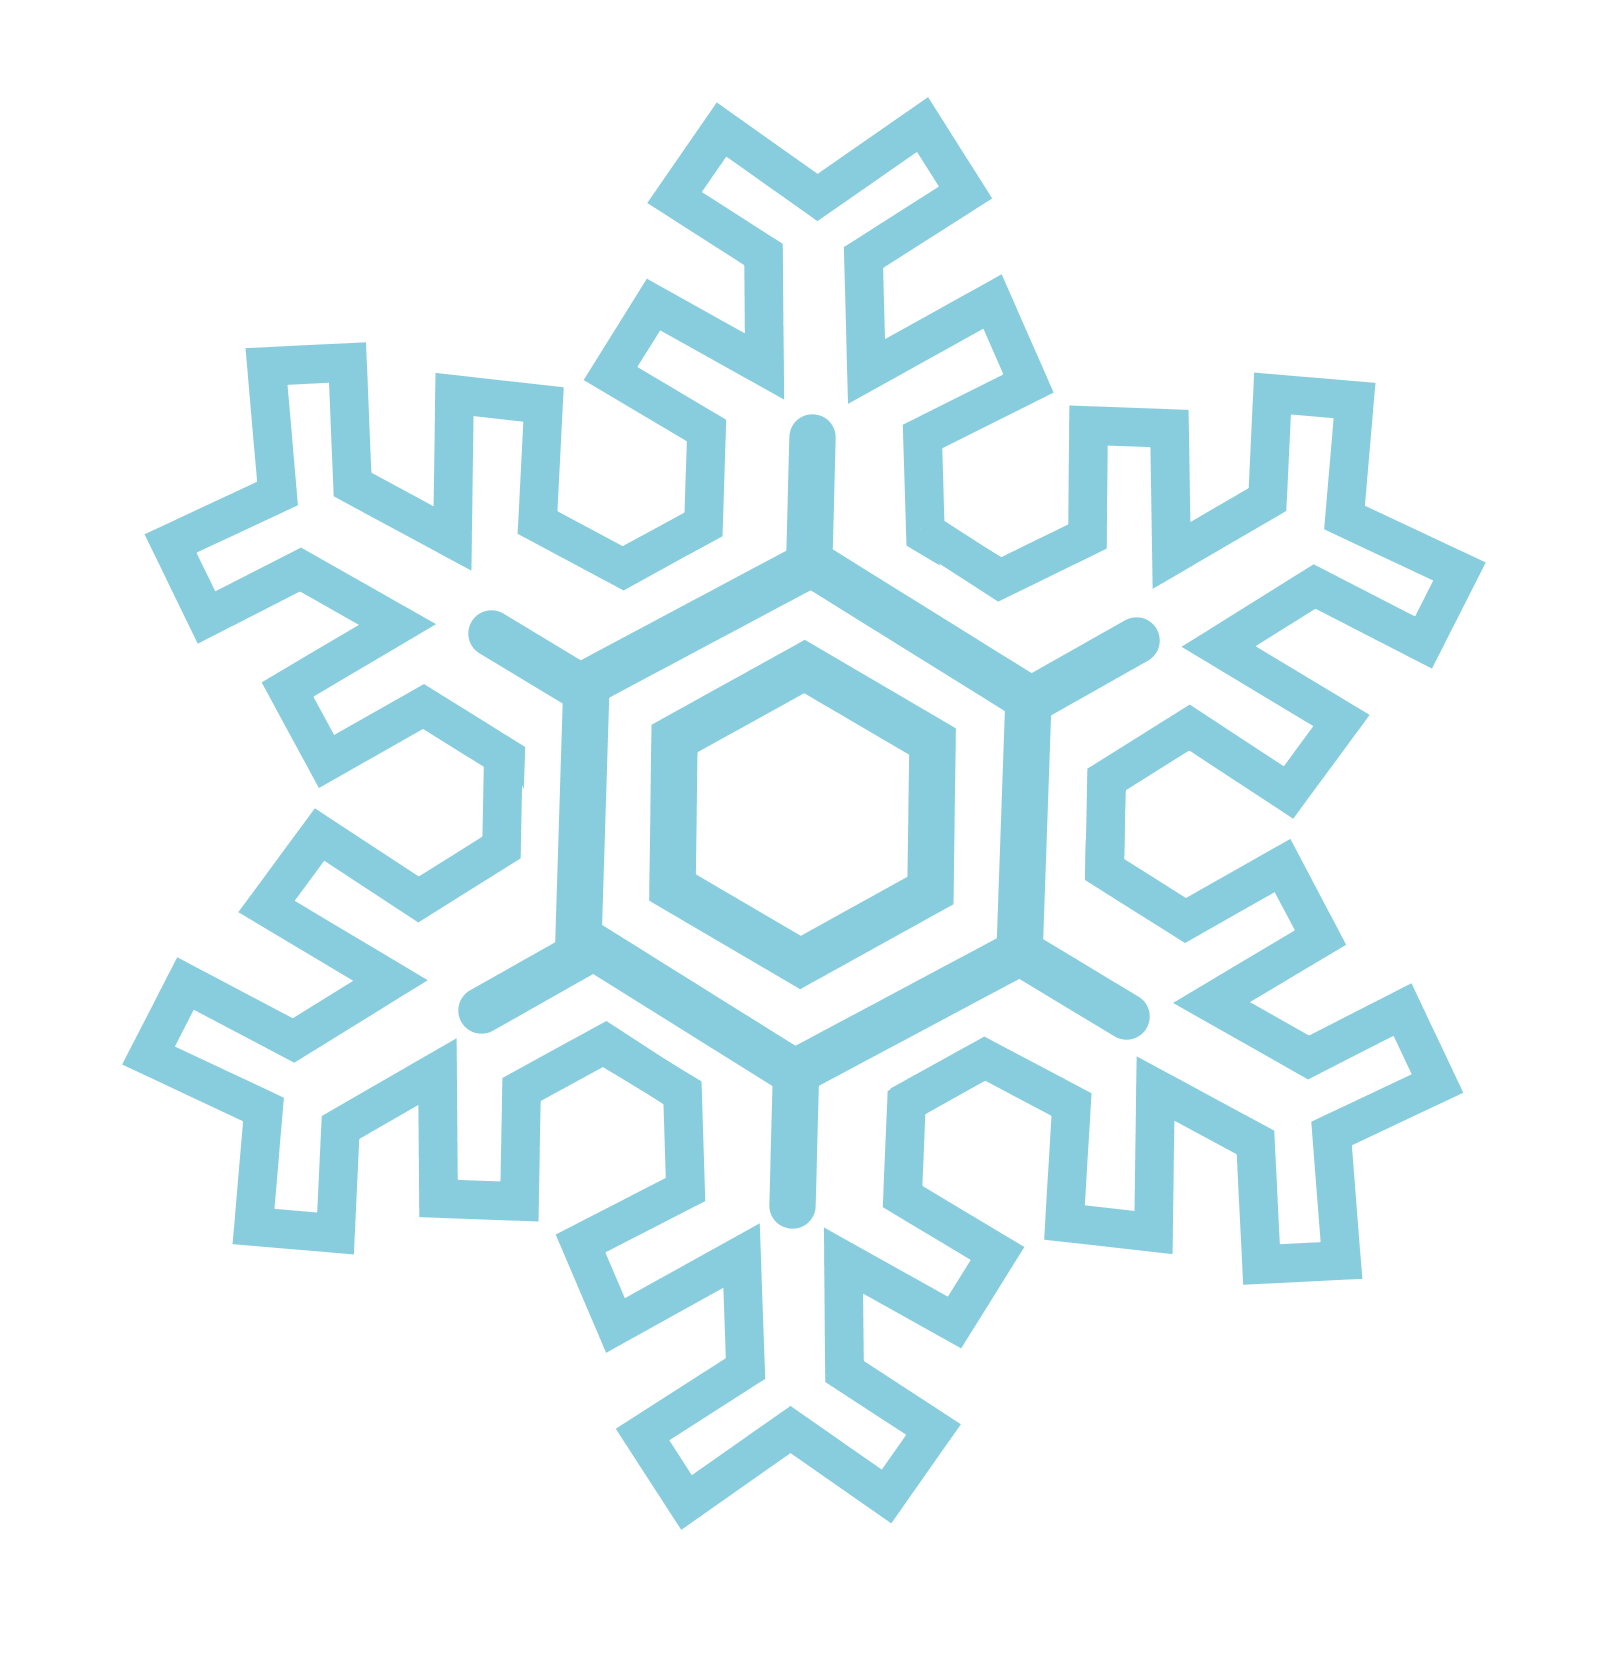 1600x1670 Snowflakes Png Images Free Download, Snowflake Png